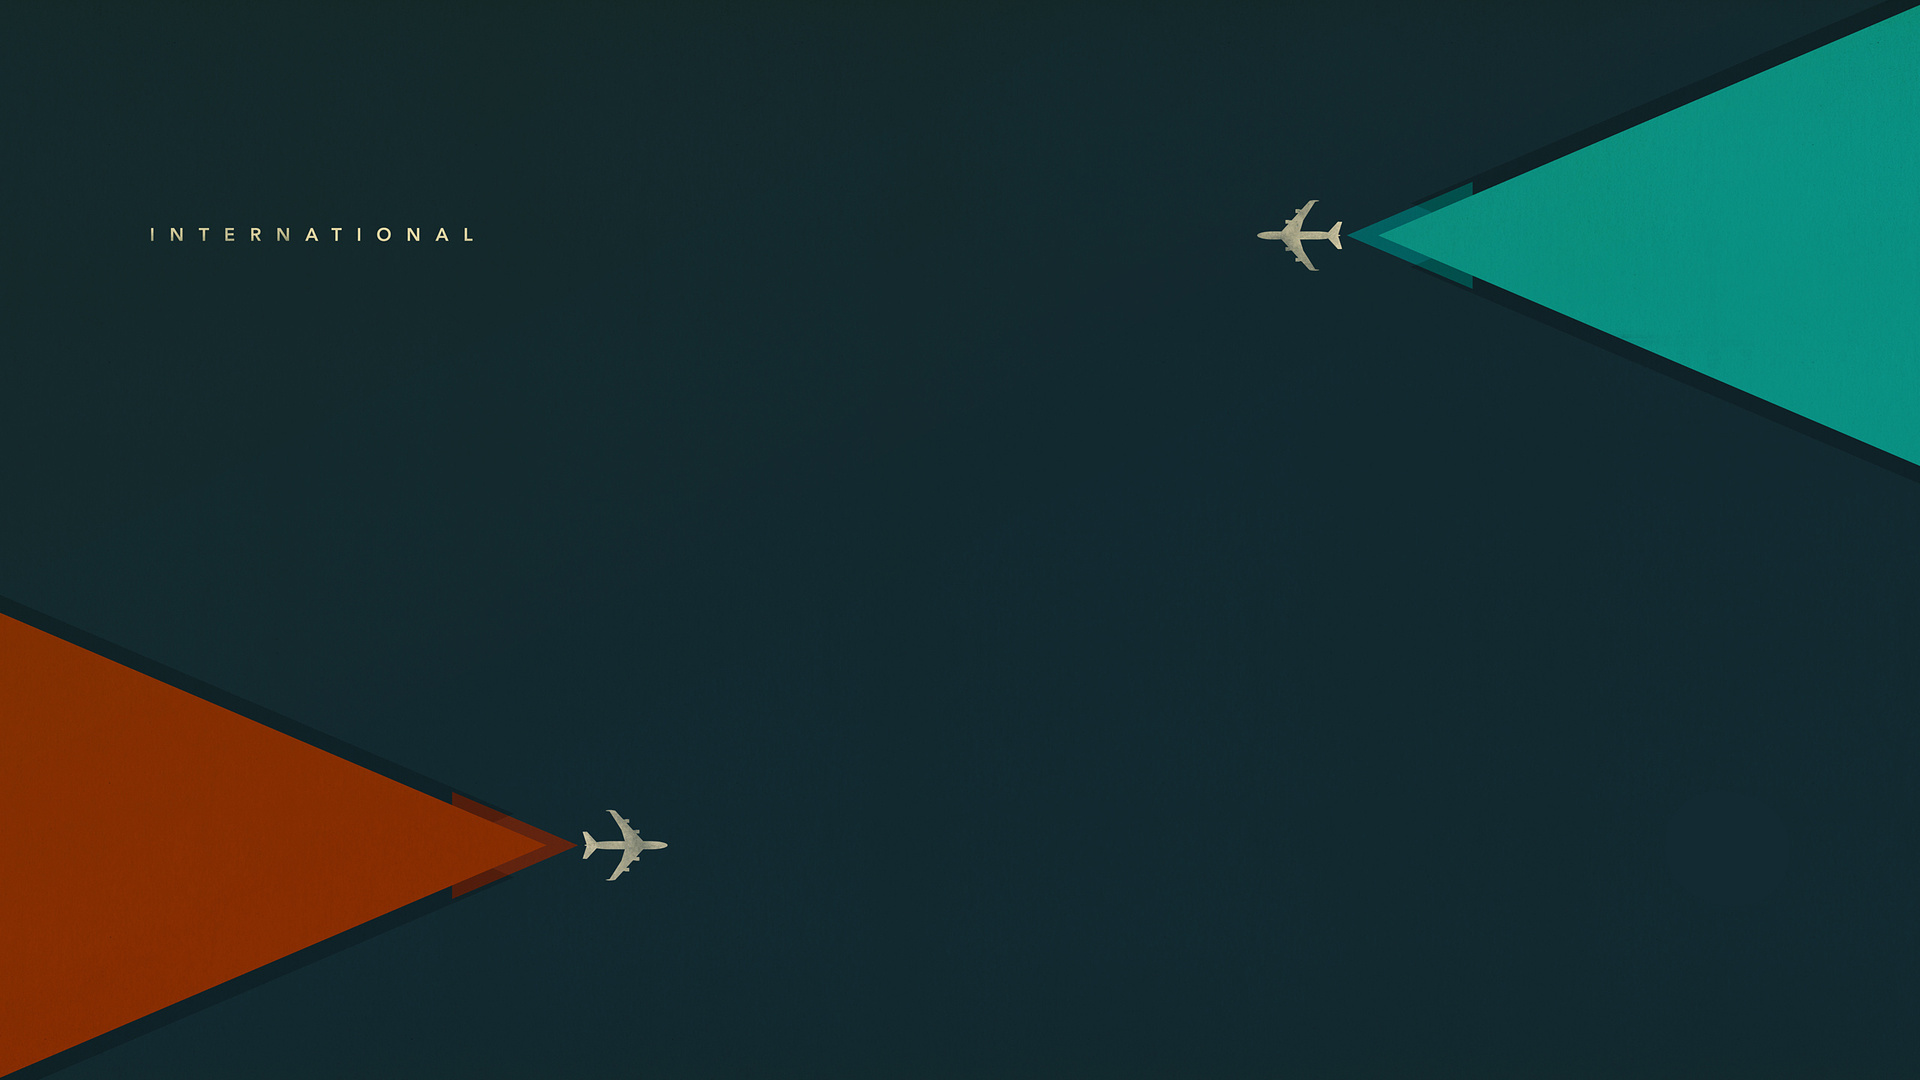 Planes wallpapers photos and desktop backgrounds up to 8k - 8k minimal wallpaper ...